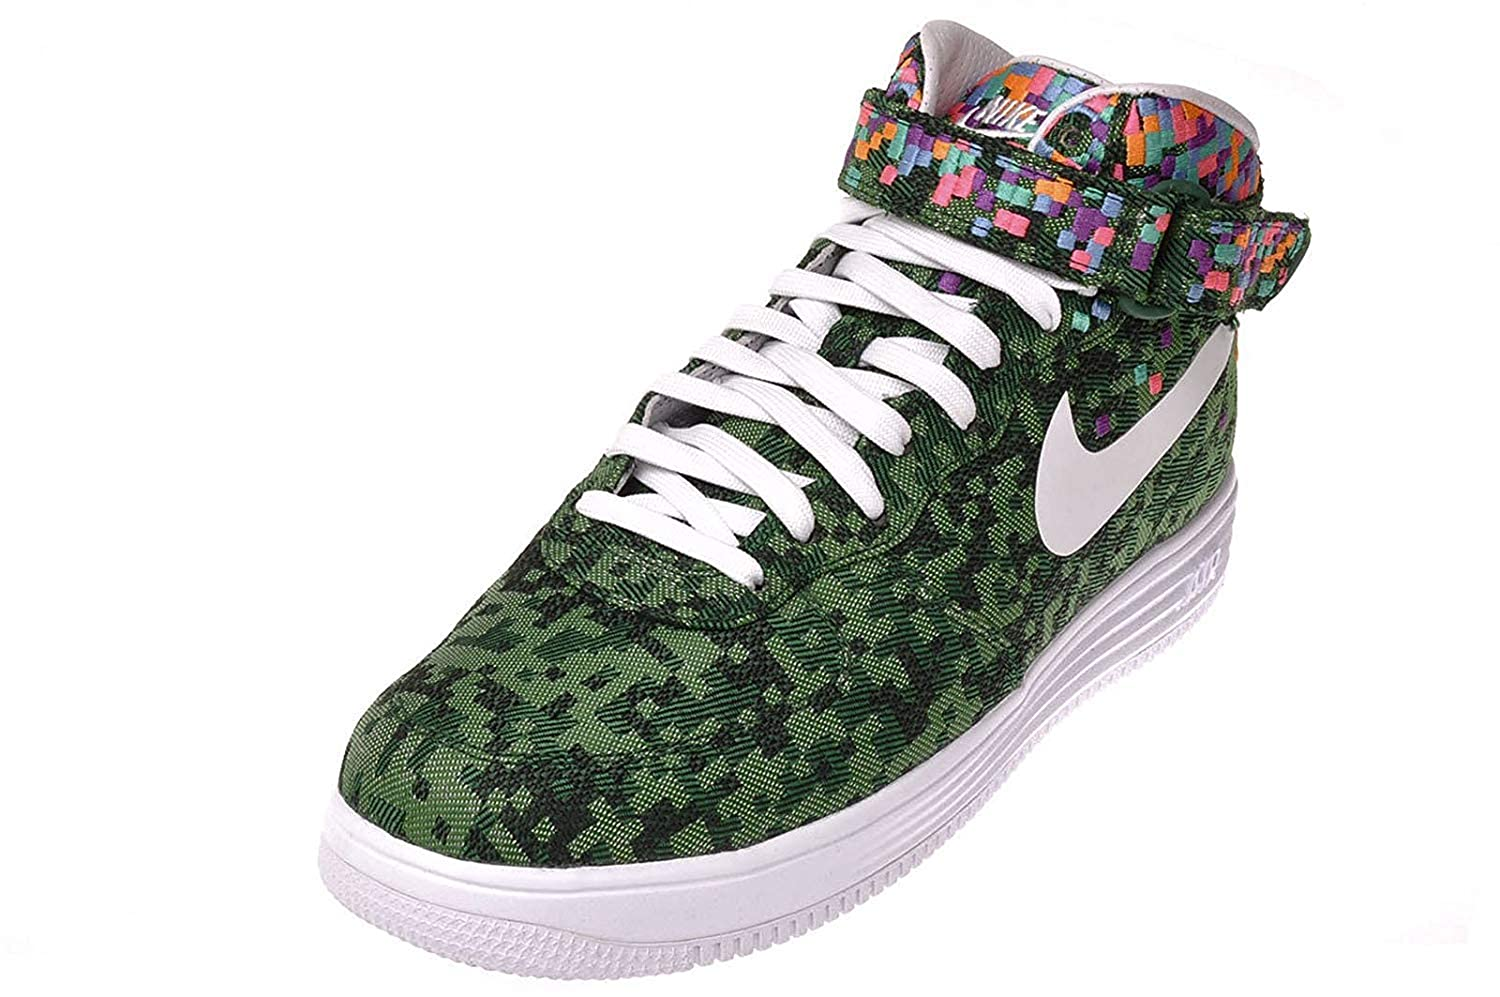 hot sales f79bb 39559 Amazon.com   Nike Lunar Force 1 Mid Jacquard JCRD SP Rio 693208-331 Pine  Green Men s Shoes (Size 9)   Fashion Sneakers